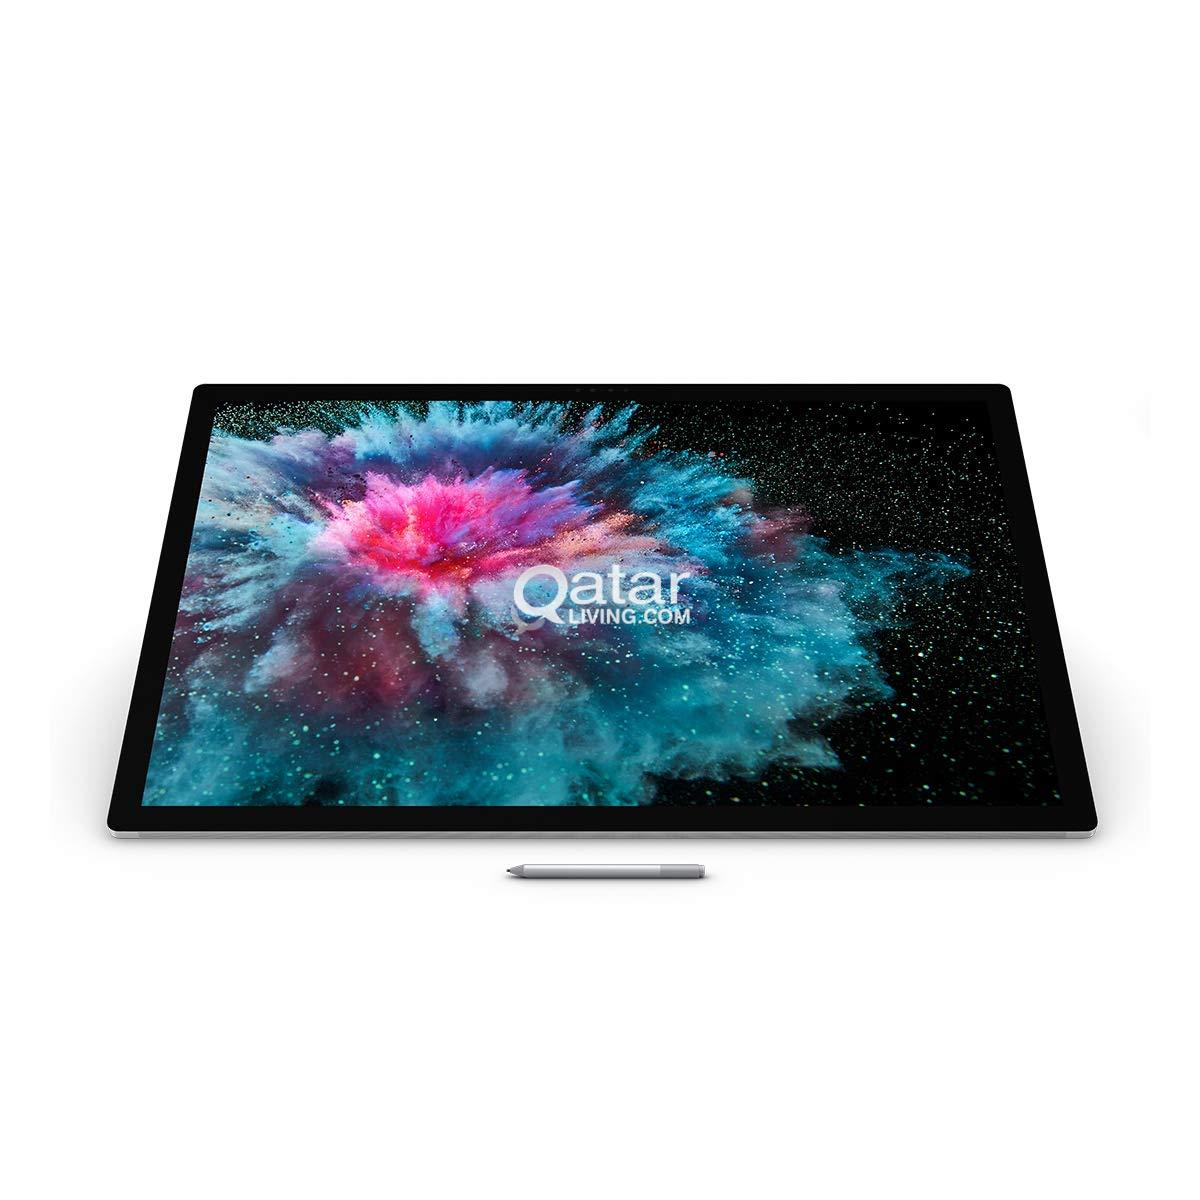 "Microsoft Surface Studio 2- 28"" Touch-Screen All-In-One- Intel Core i7- 16GB Memory- 1TB SSD- BOX SEALED"